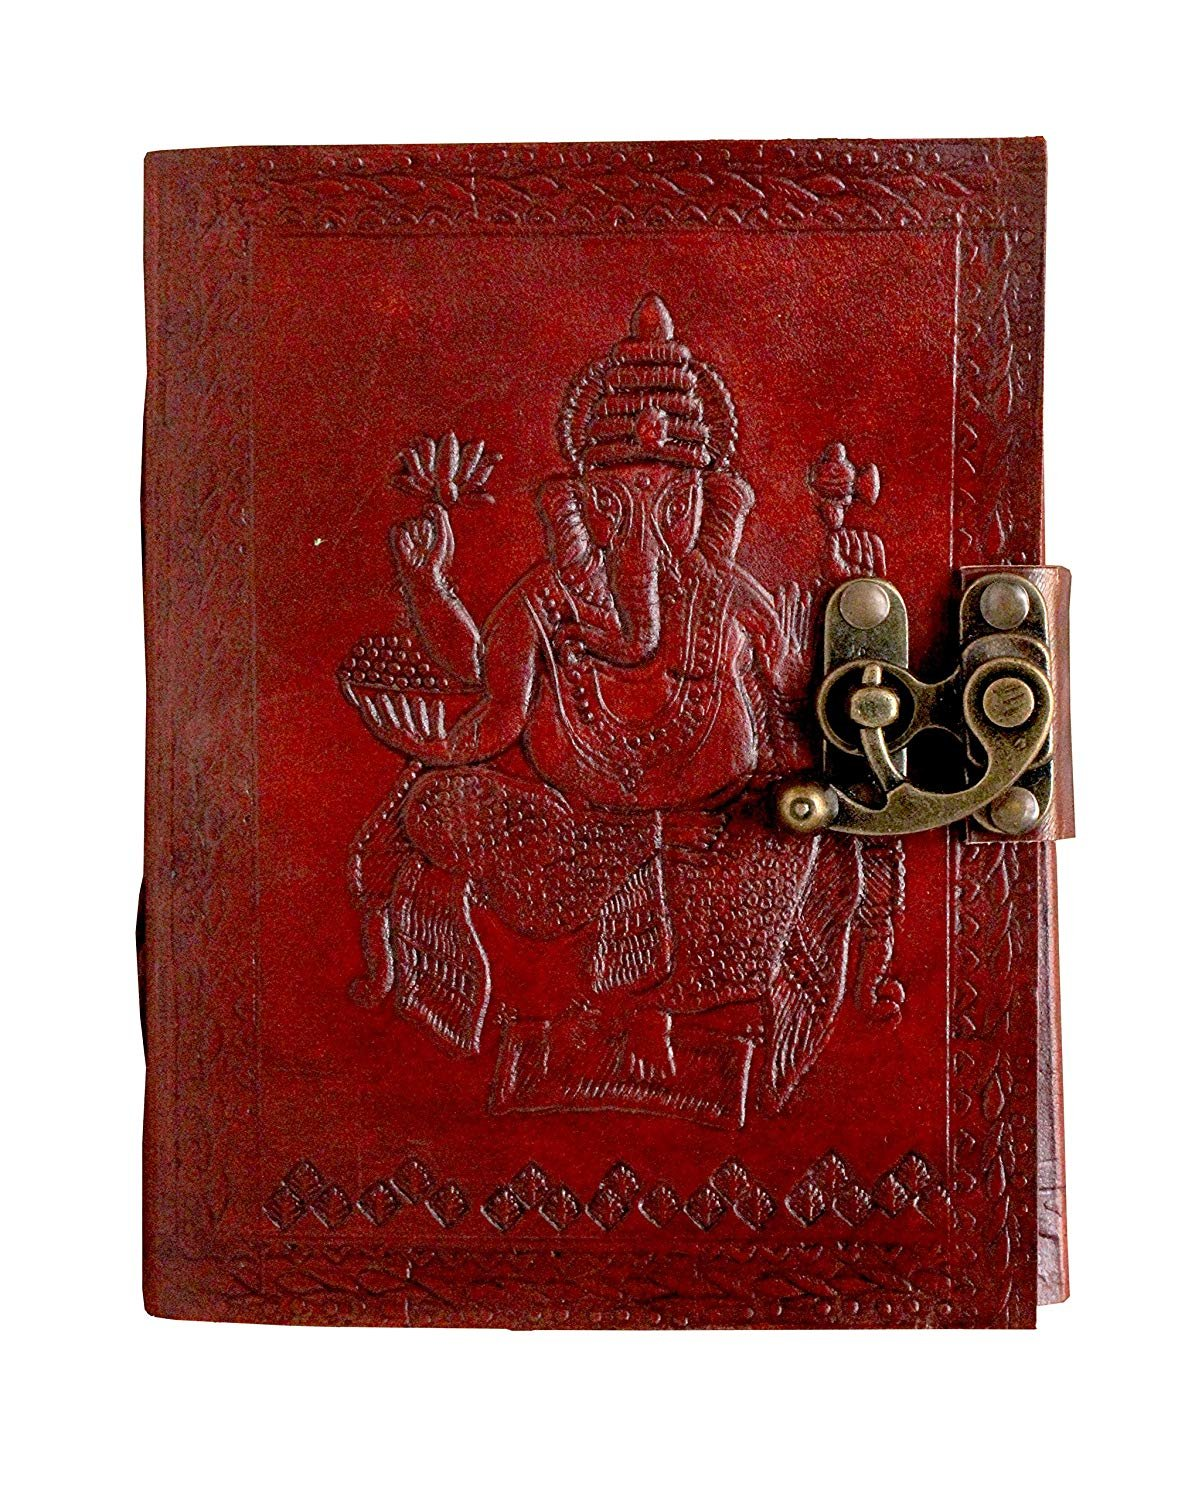 S R MART Pure Genuine Real Vintage Hunter Leather Handmade Paper Notebook Diary for Office Home to Write Poem Daily Update with Attractive Metal Lock and Engraved Ganesha